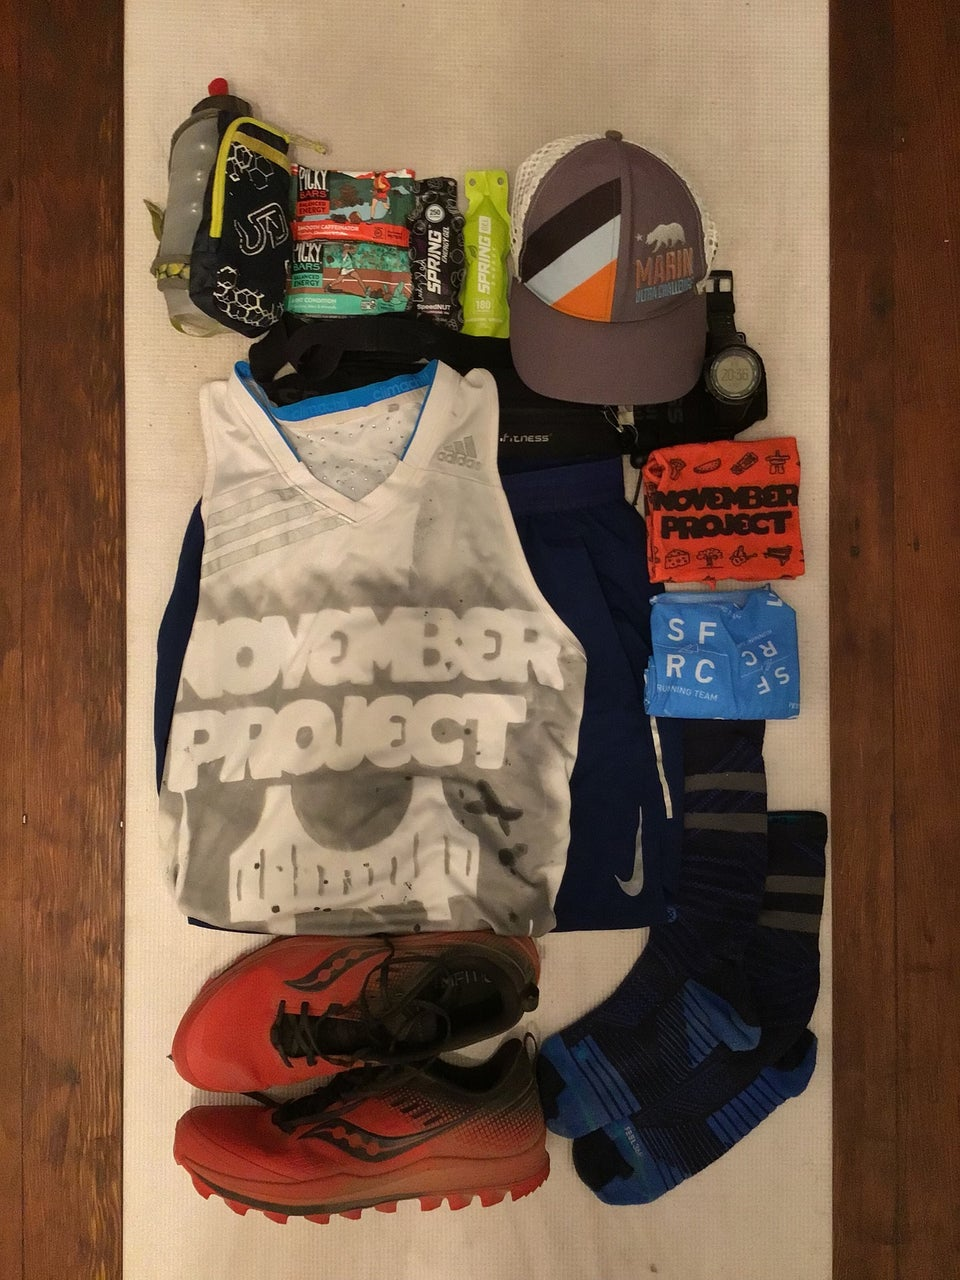 White yoga mat on a hardwood floor with running shoes, clothes, gear, fuel laid out in an orderly fashion.